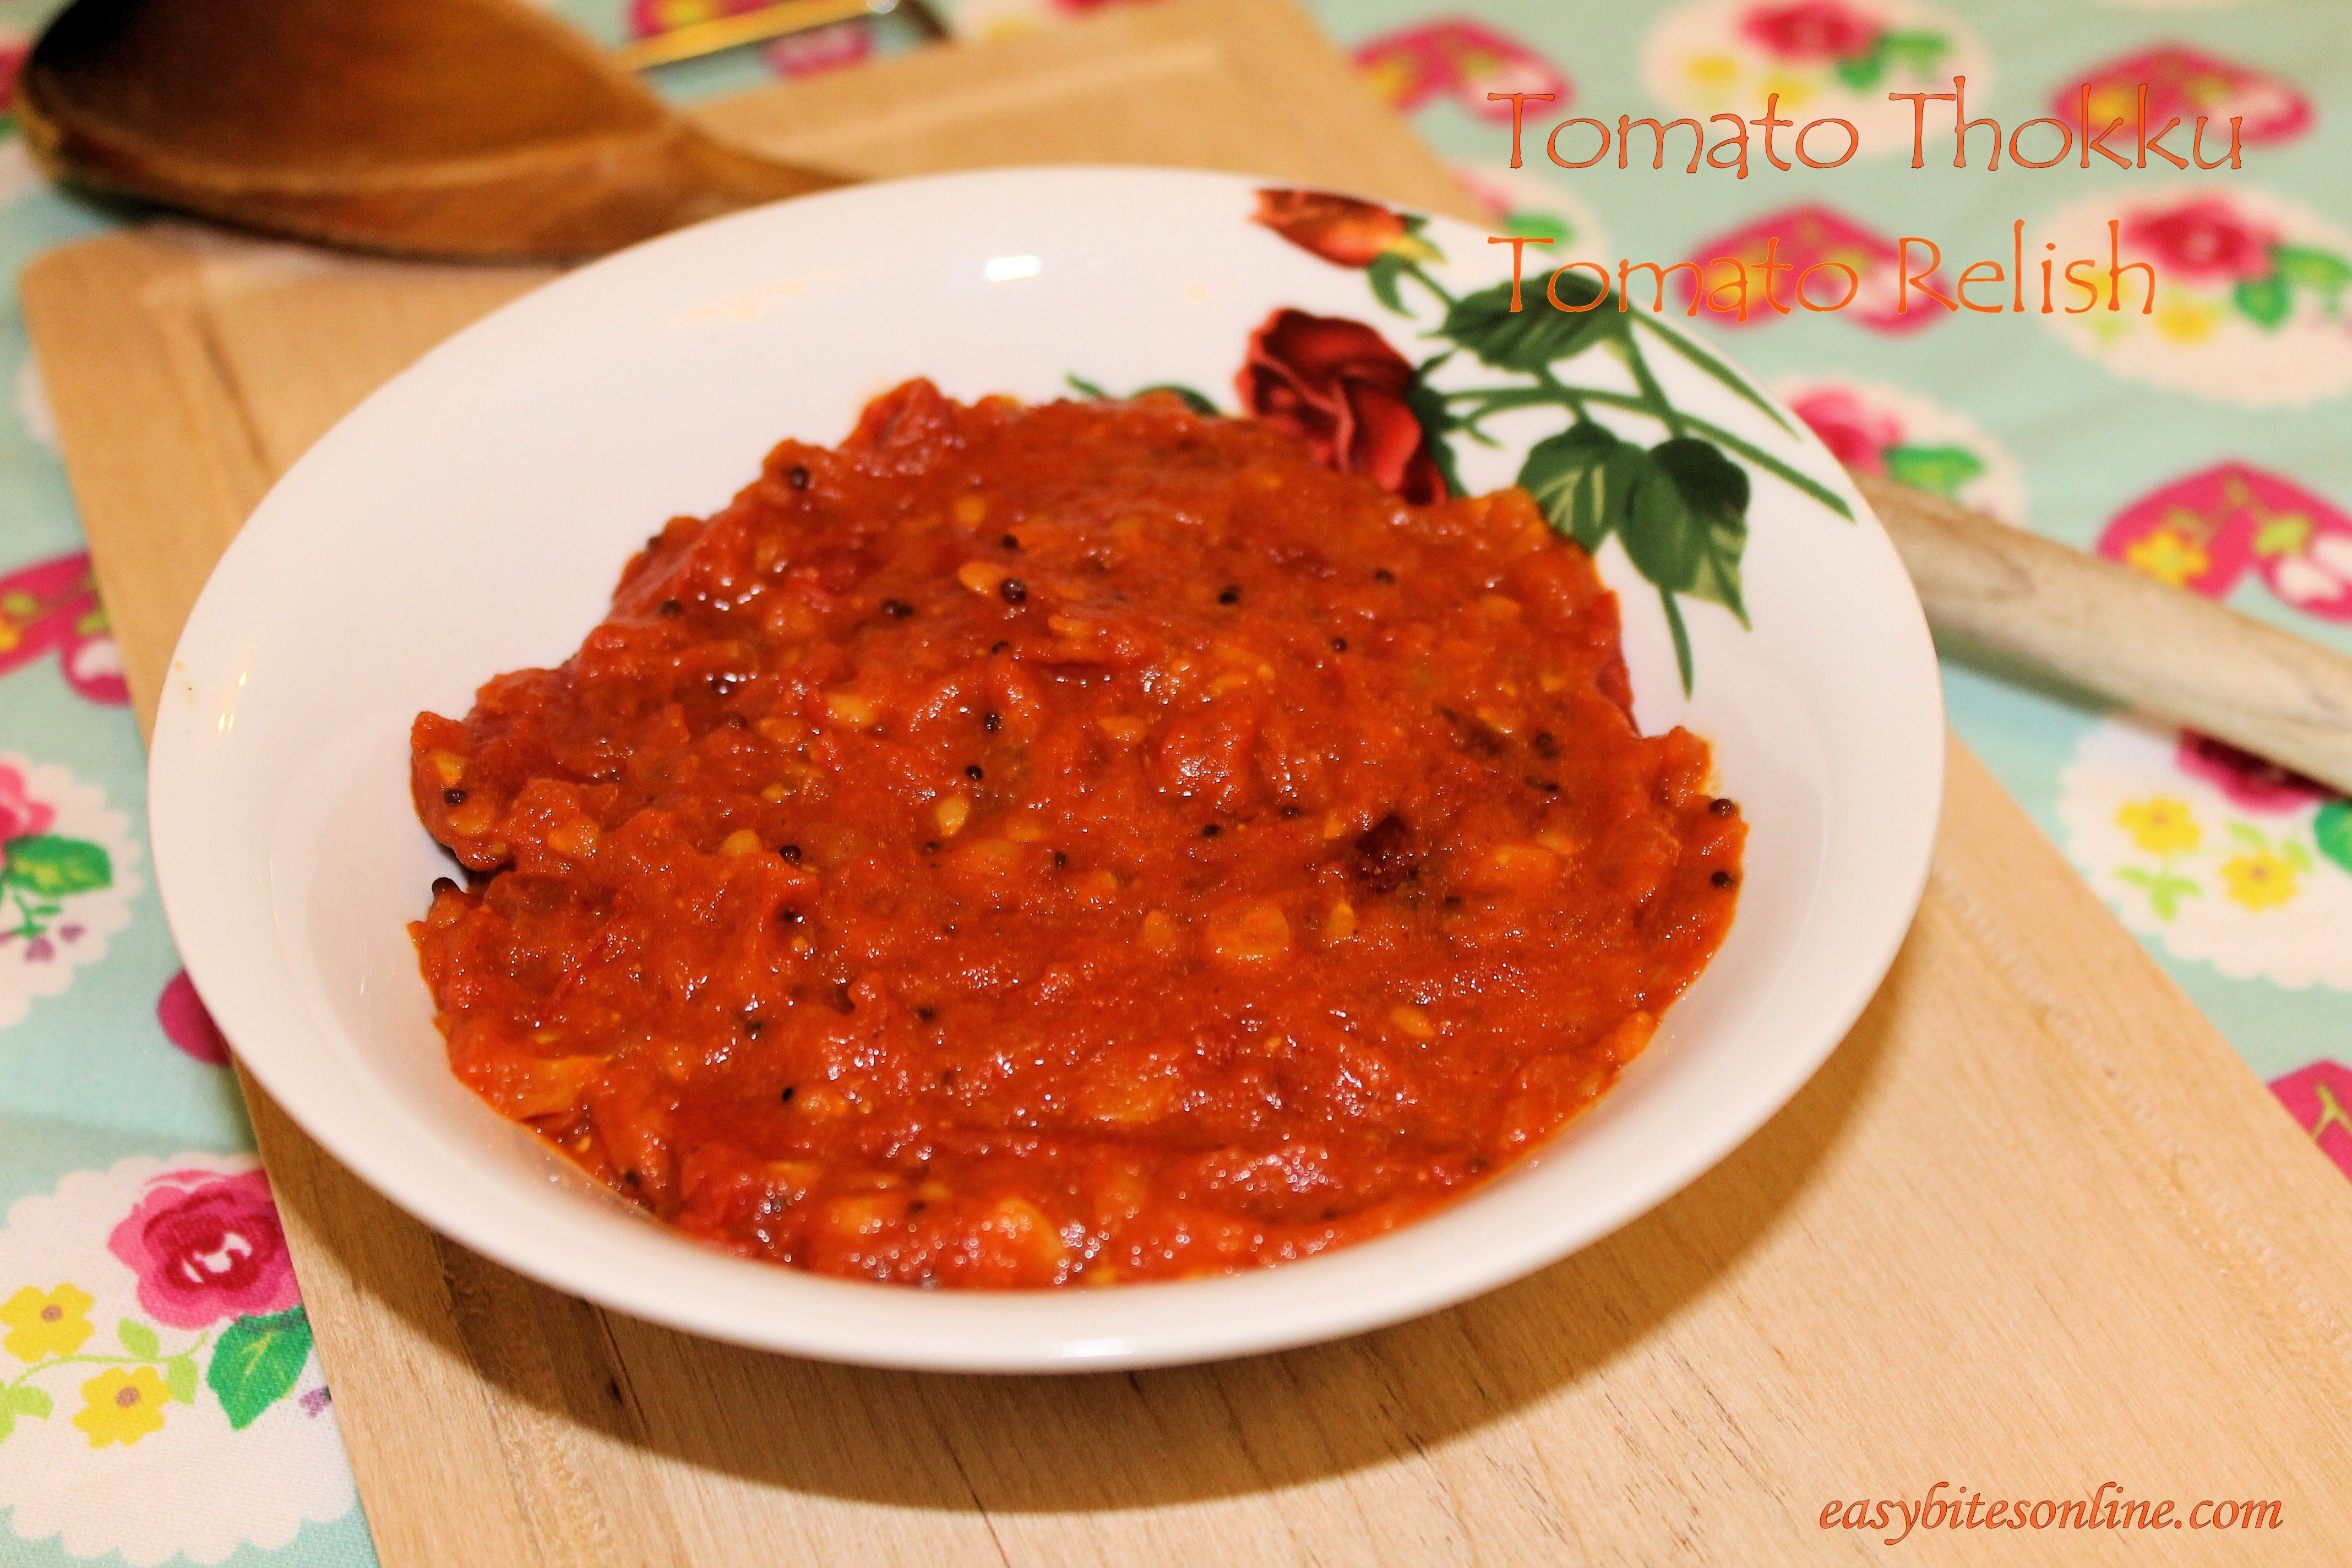 ... spicy tomato sauce mussels in spicy tomato sauce spicy tomato relish